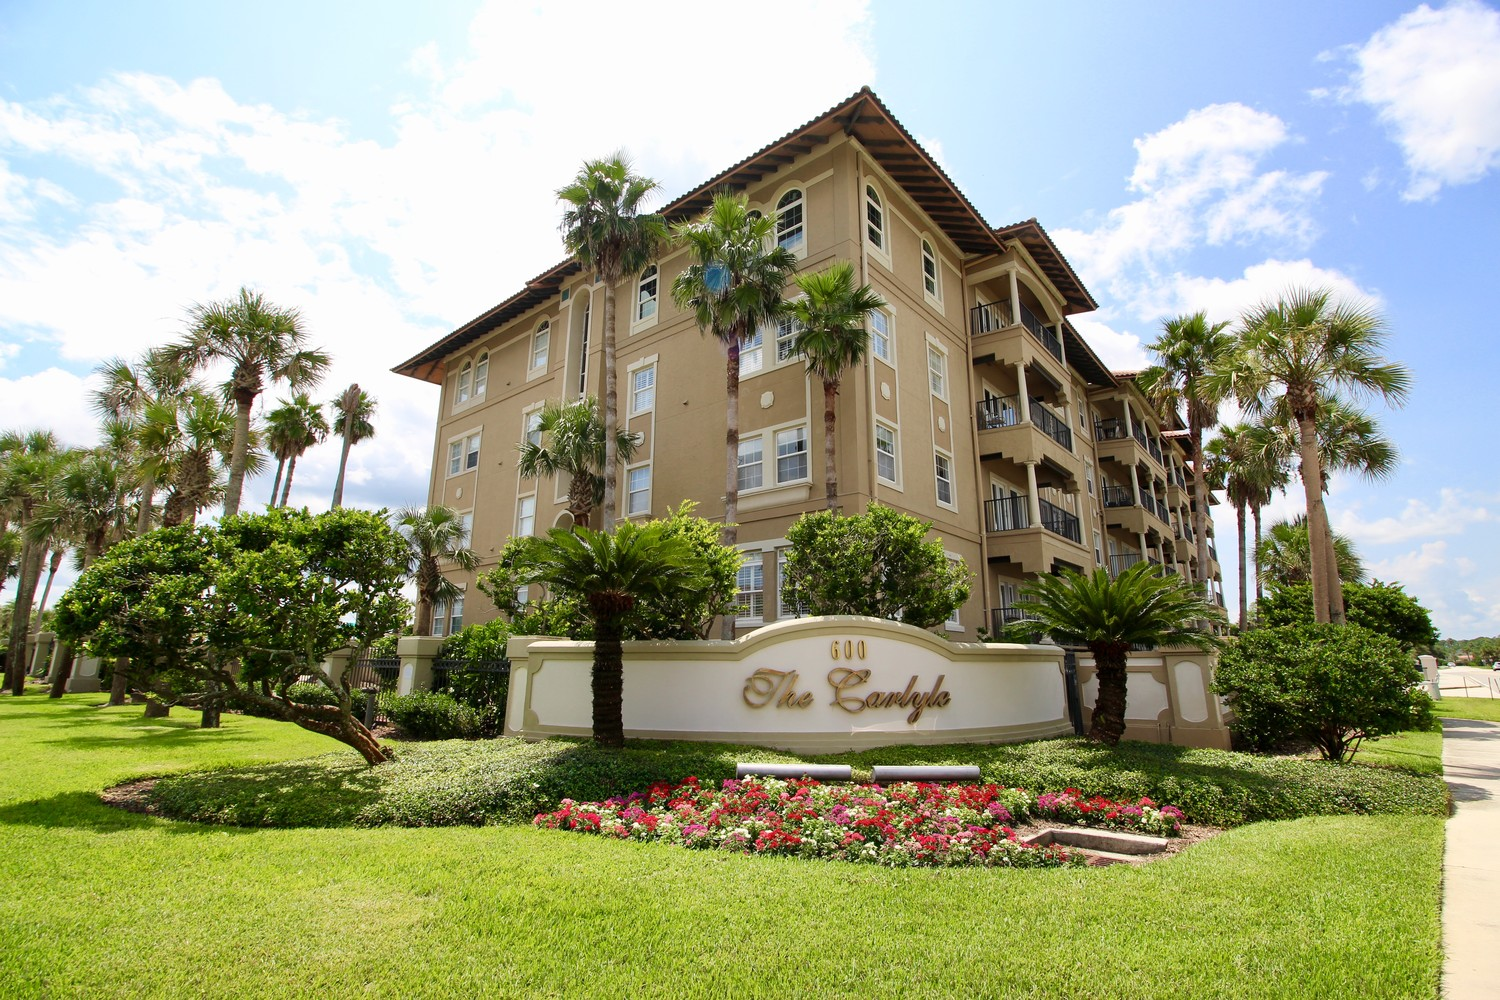 The Carlyle Condos are located at 600 Ponte Vedra Boulevard.